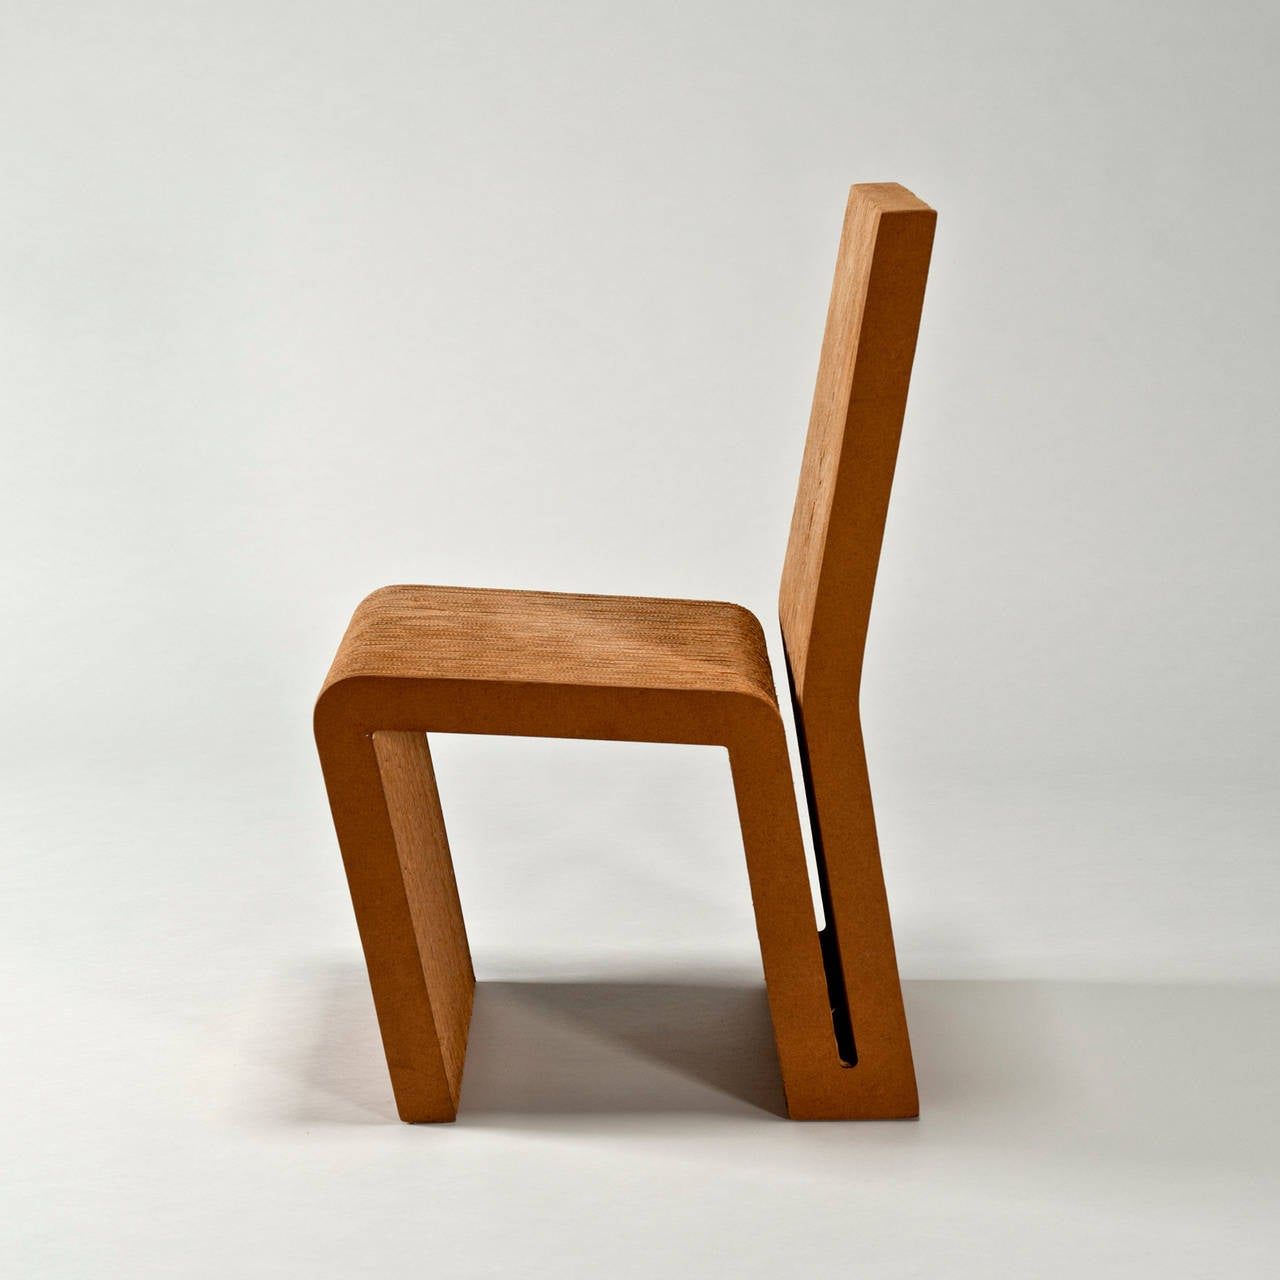 70s chairs is frank o gehry s cardboard chair wiggle side chair - Frank Gehry Side Chair In Cardboard For Vitra Edition 2